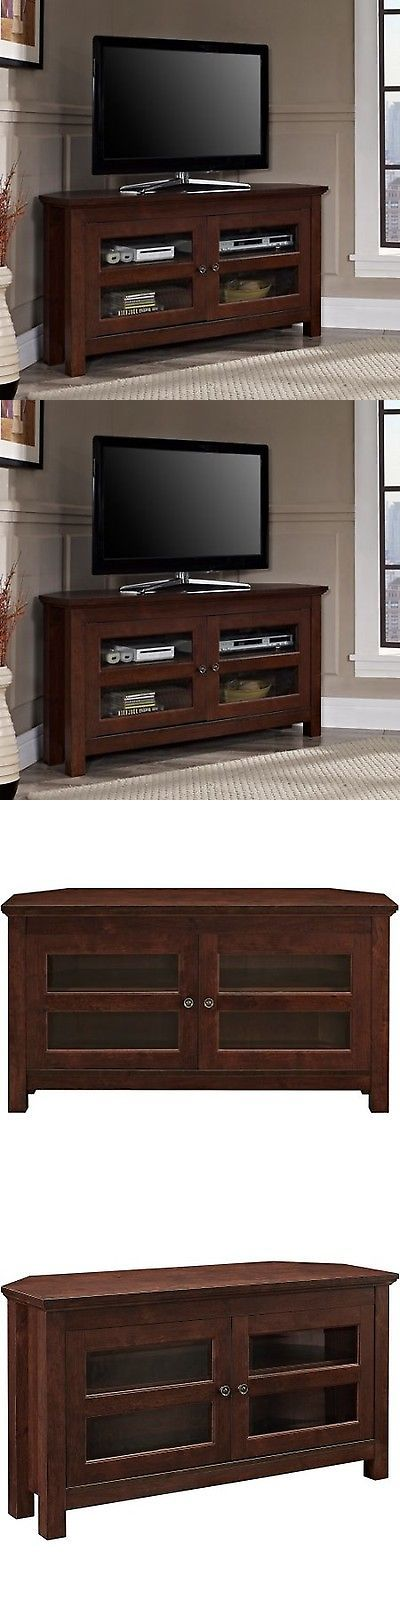 Entertainment Units TV Stands: Corner Tv Stand Media Console Entertainment Center Furniture Brown Wood New -> BUY IT NOW ONLY: $164.23 on eBay!